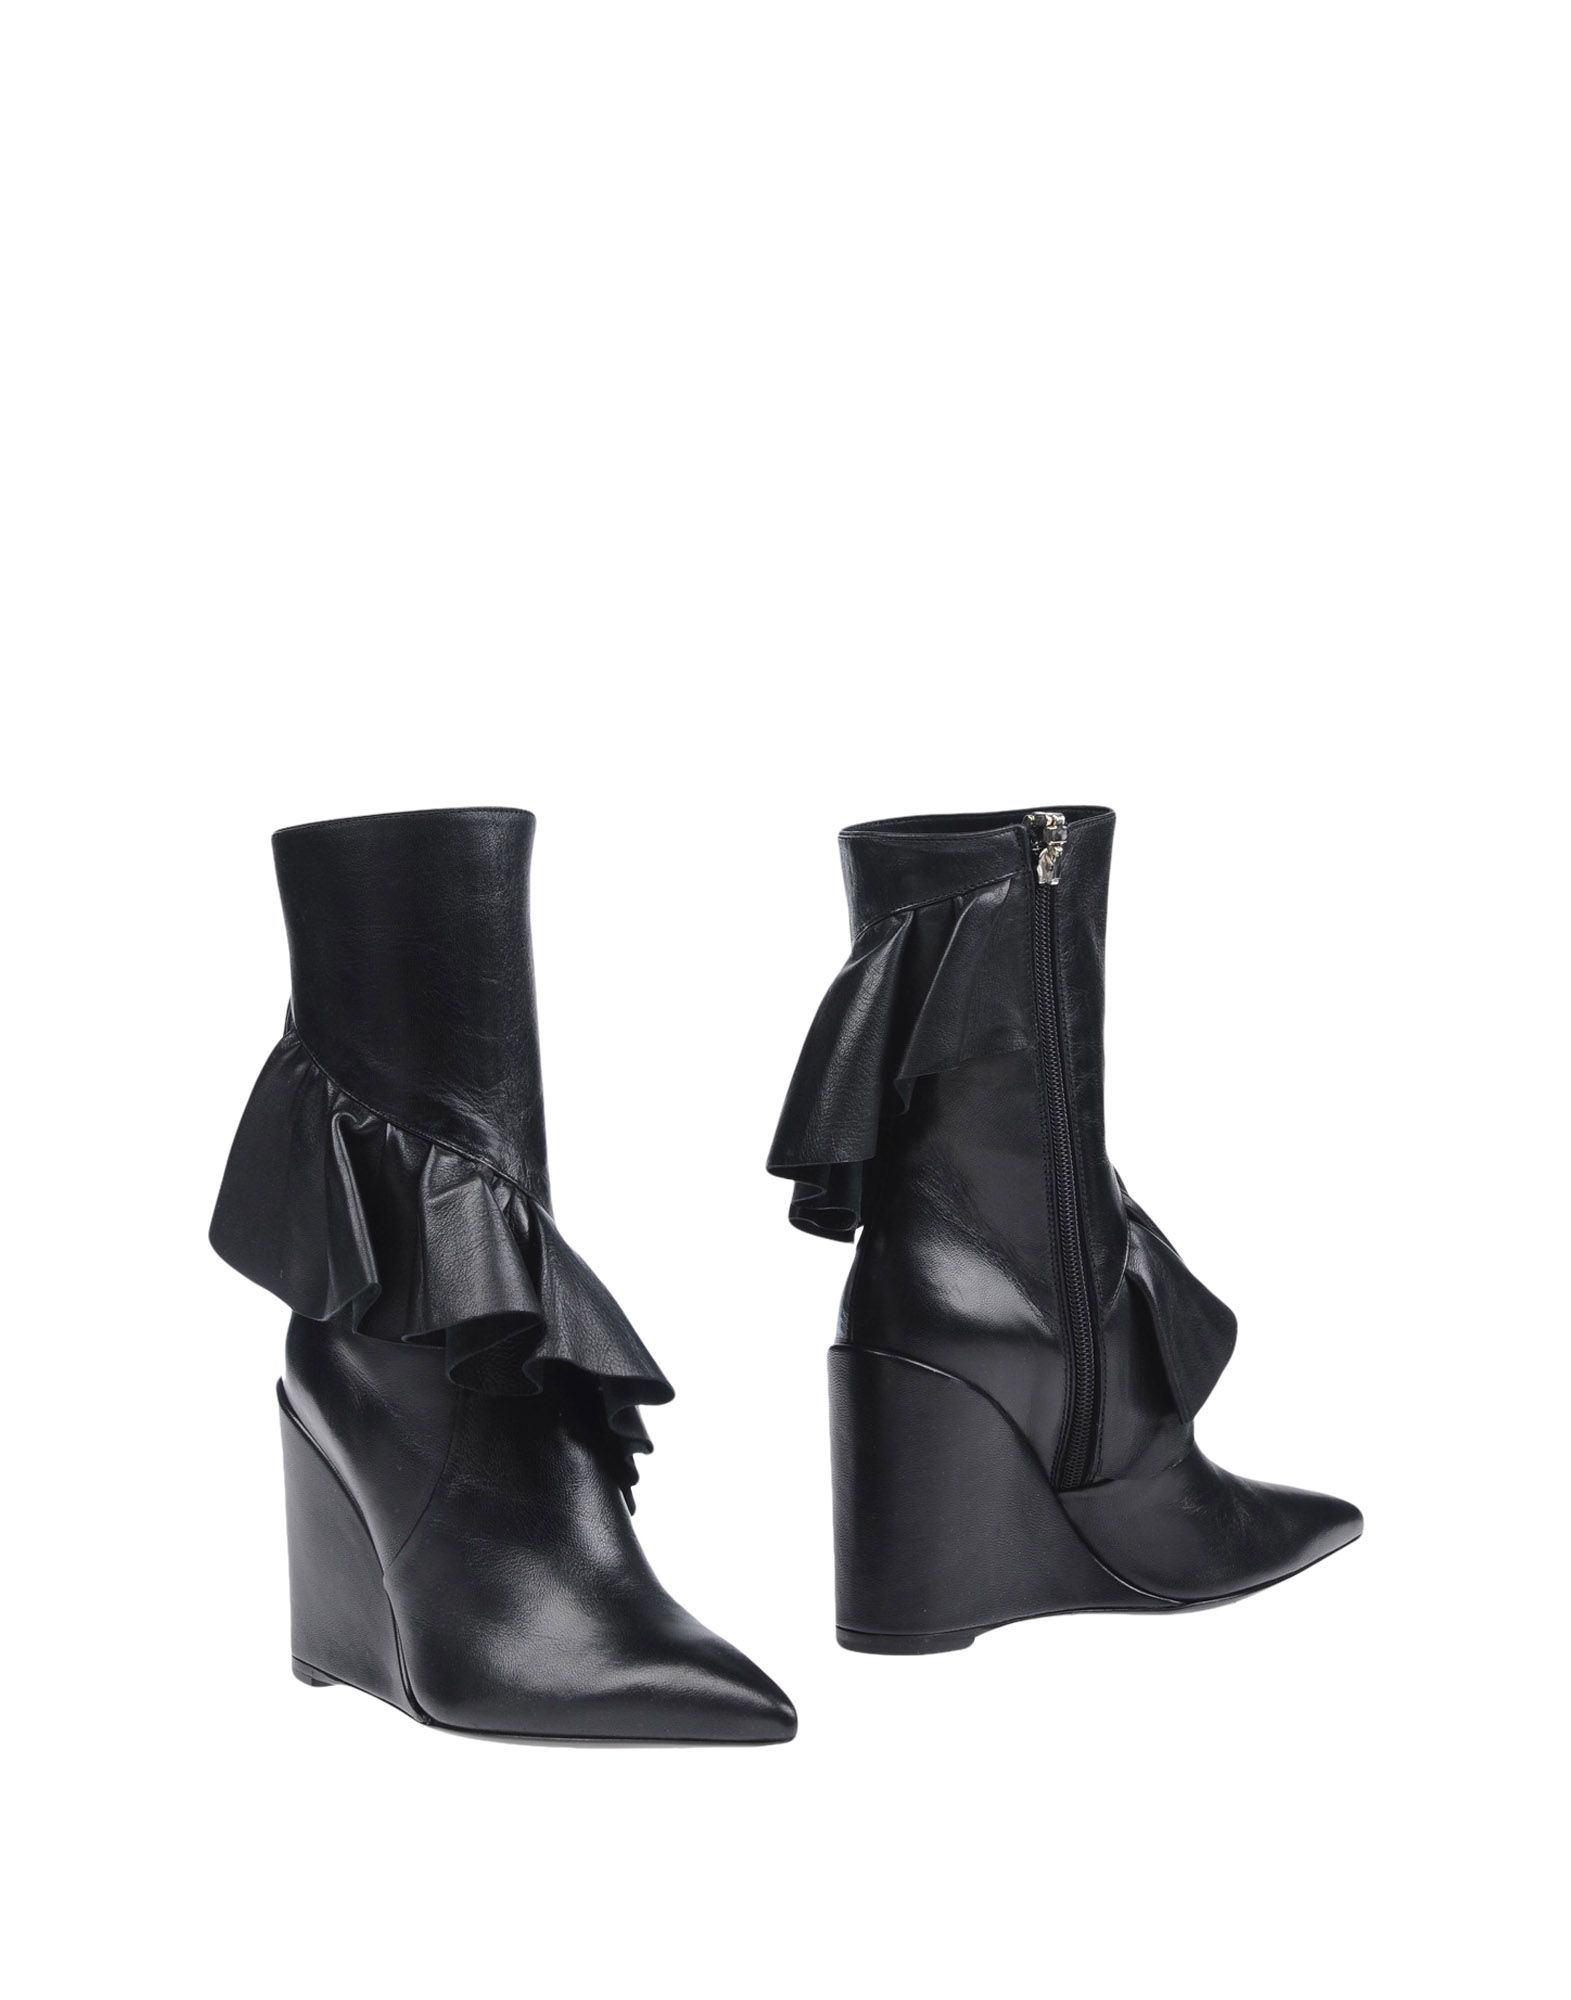 J.W.Anderson Ankle Boot - Women J.W.Anderson  Ankle Boots online on  J.W.Anderson United Kingdom - 11225975TR b31dfc